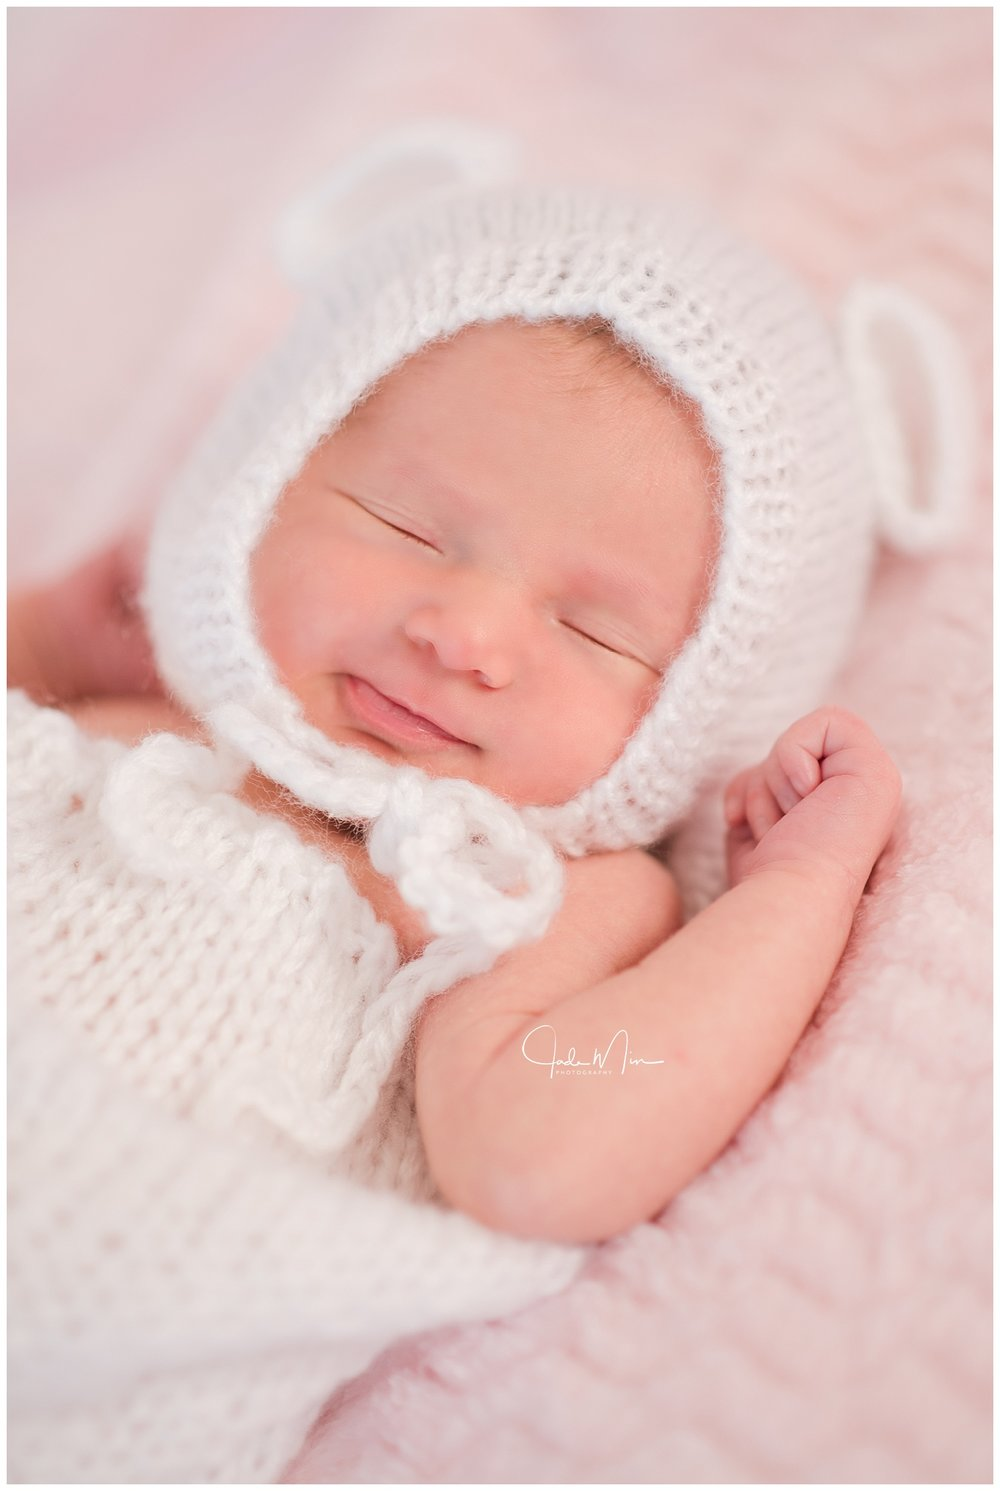 Baby Amelia's newborn session - she is sleeping so peacefully.